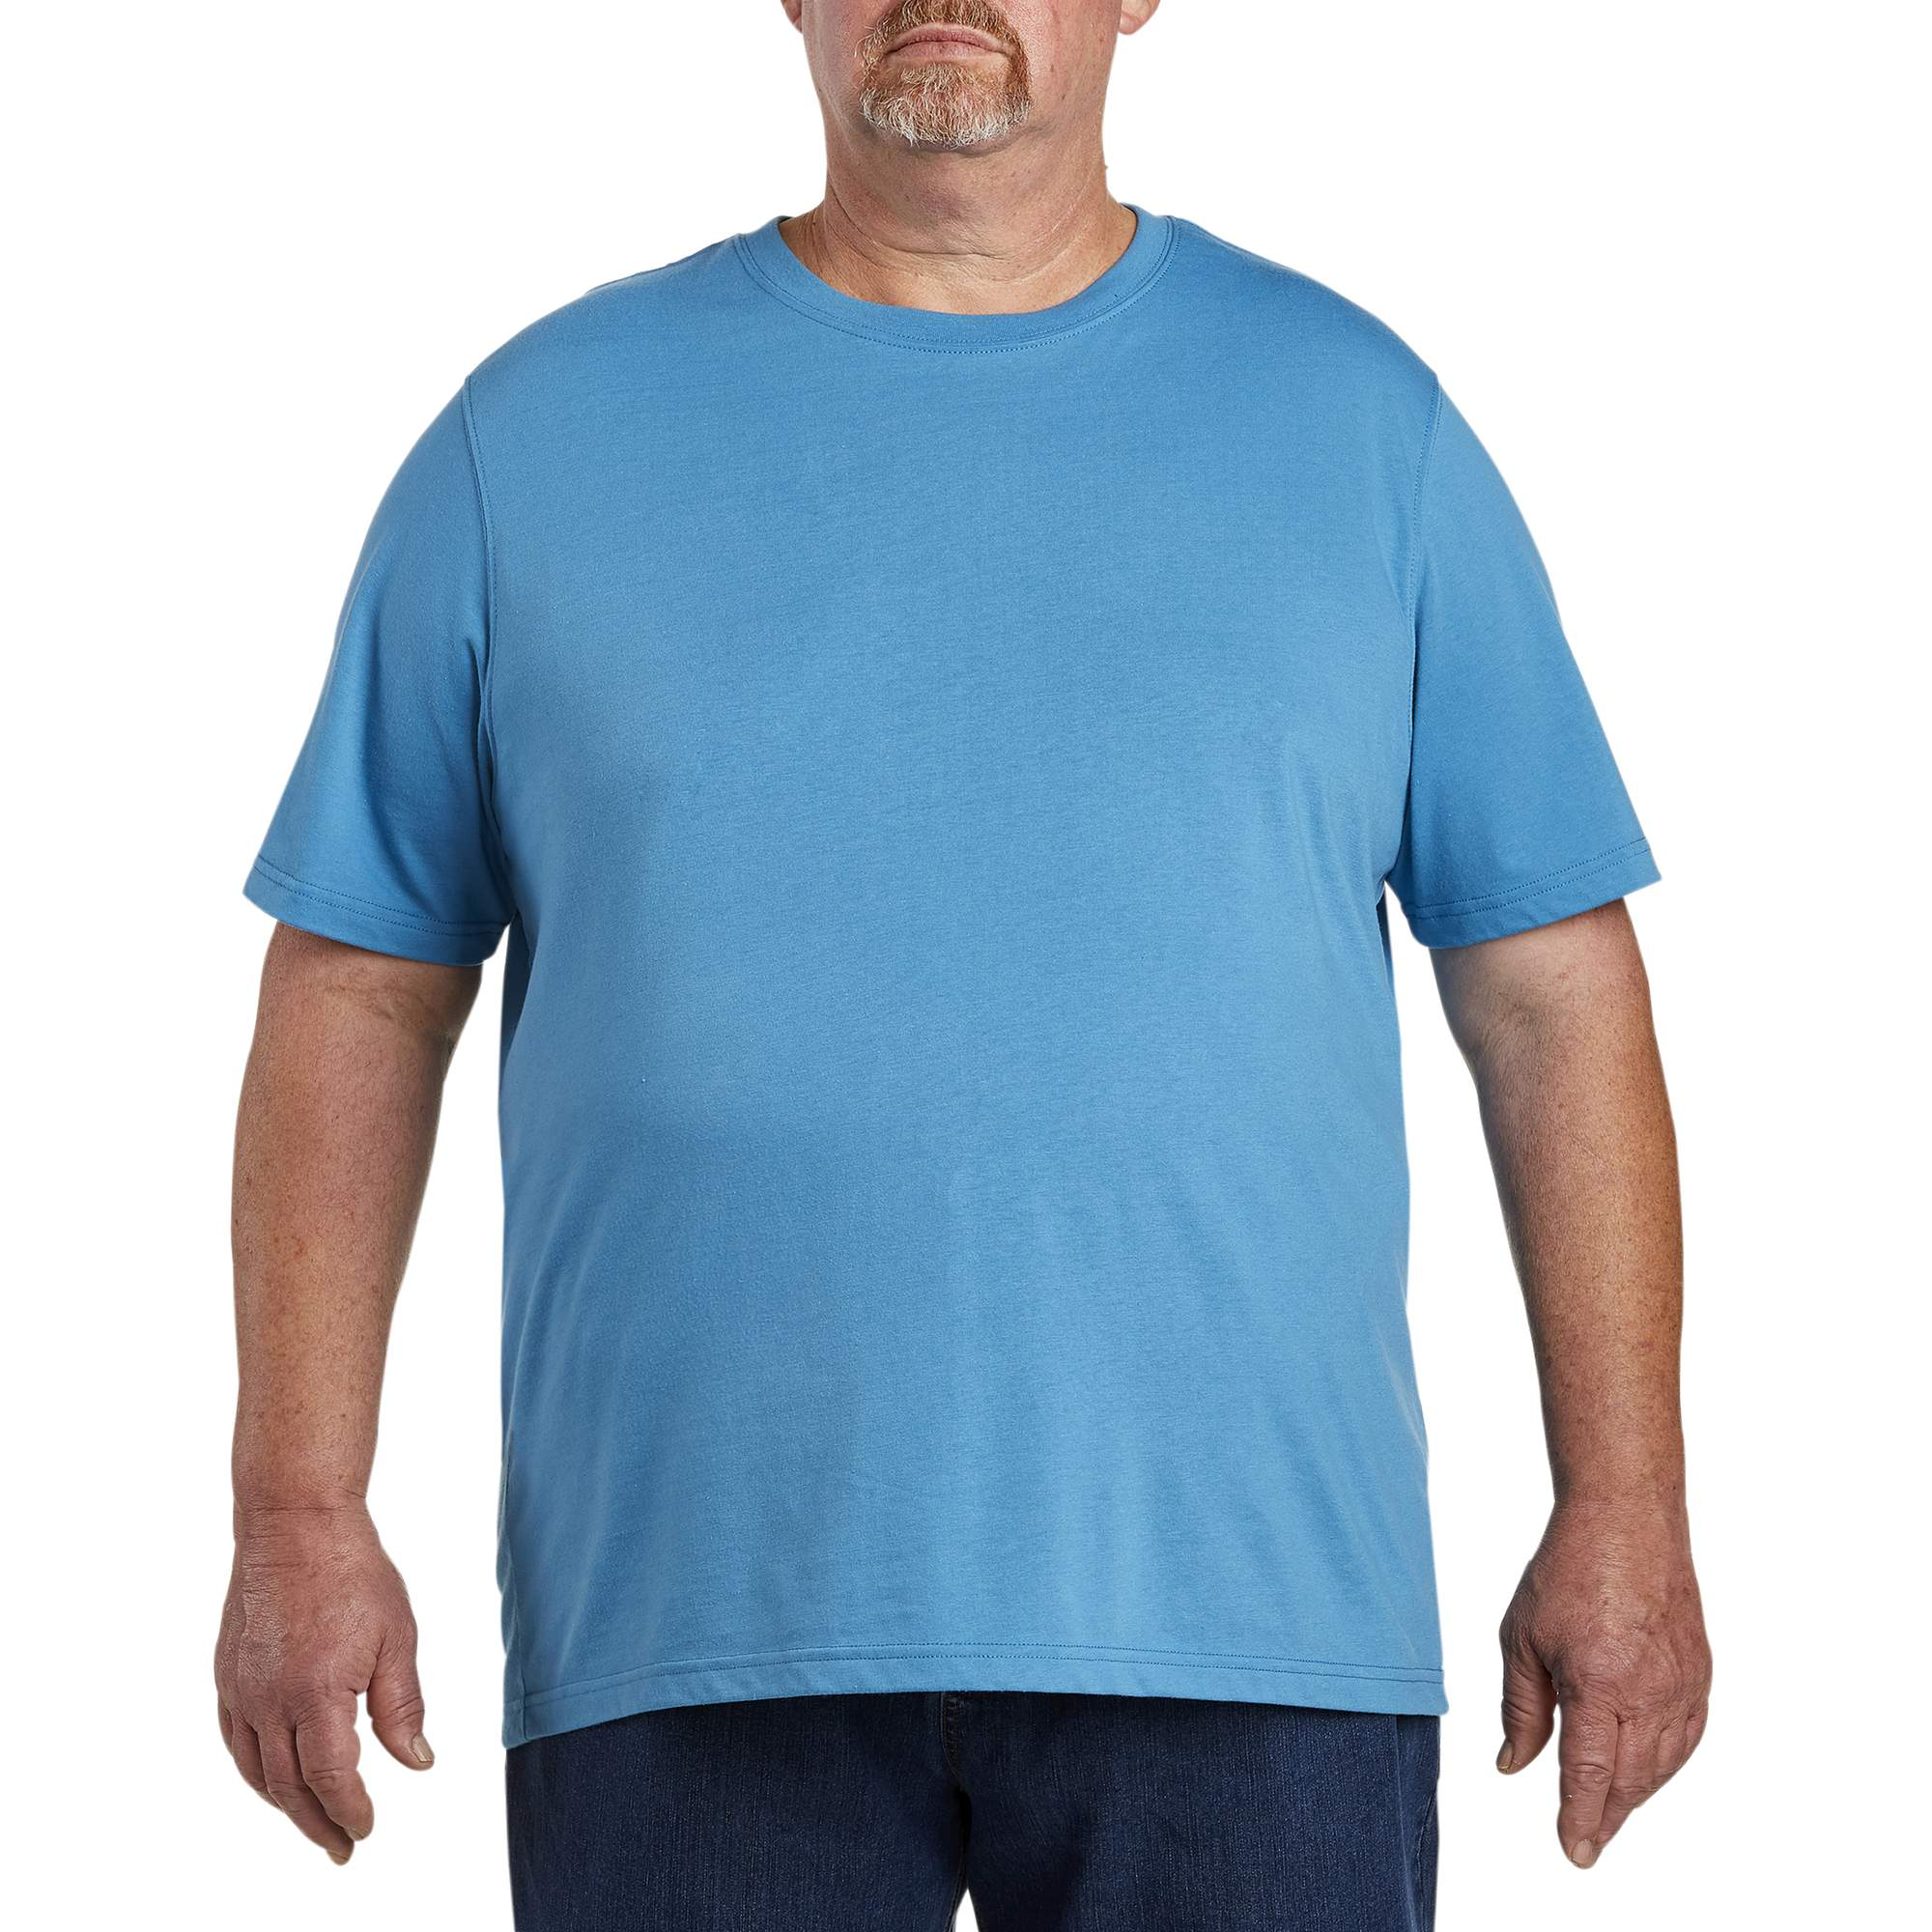 Image of 555 Turnpike Men's Big & Tall Wicking Jersey No Pocket Tee